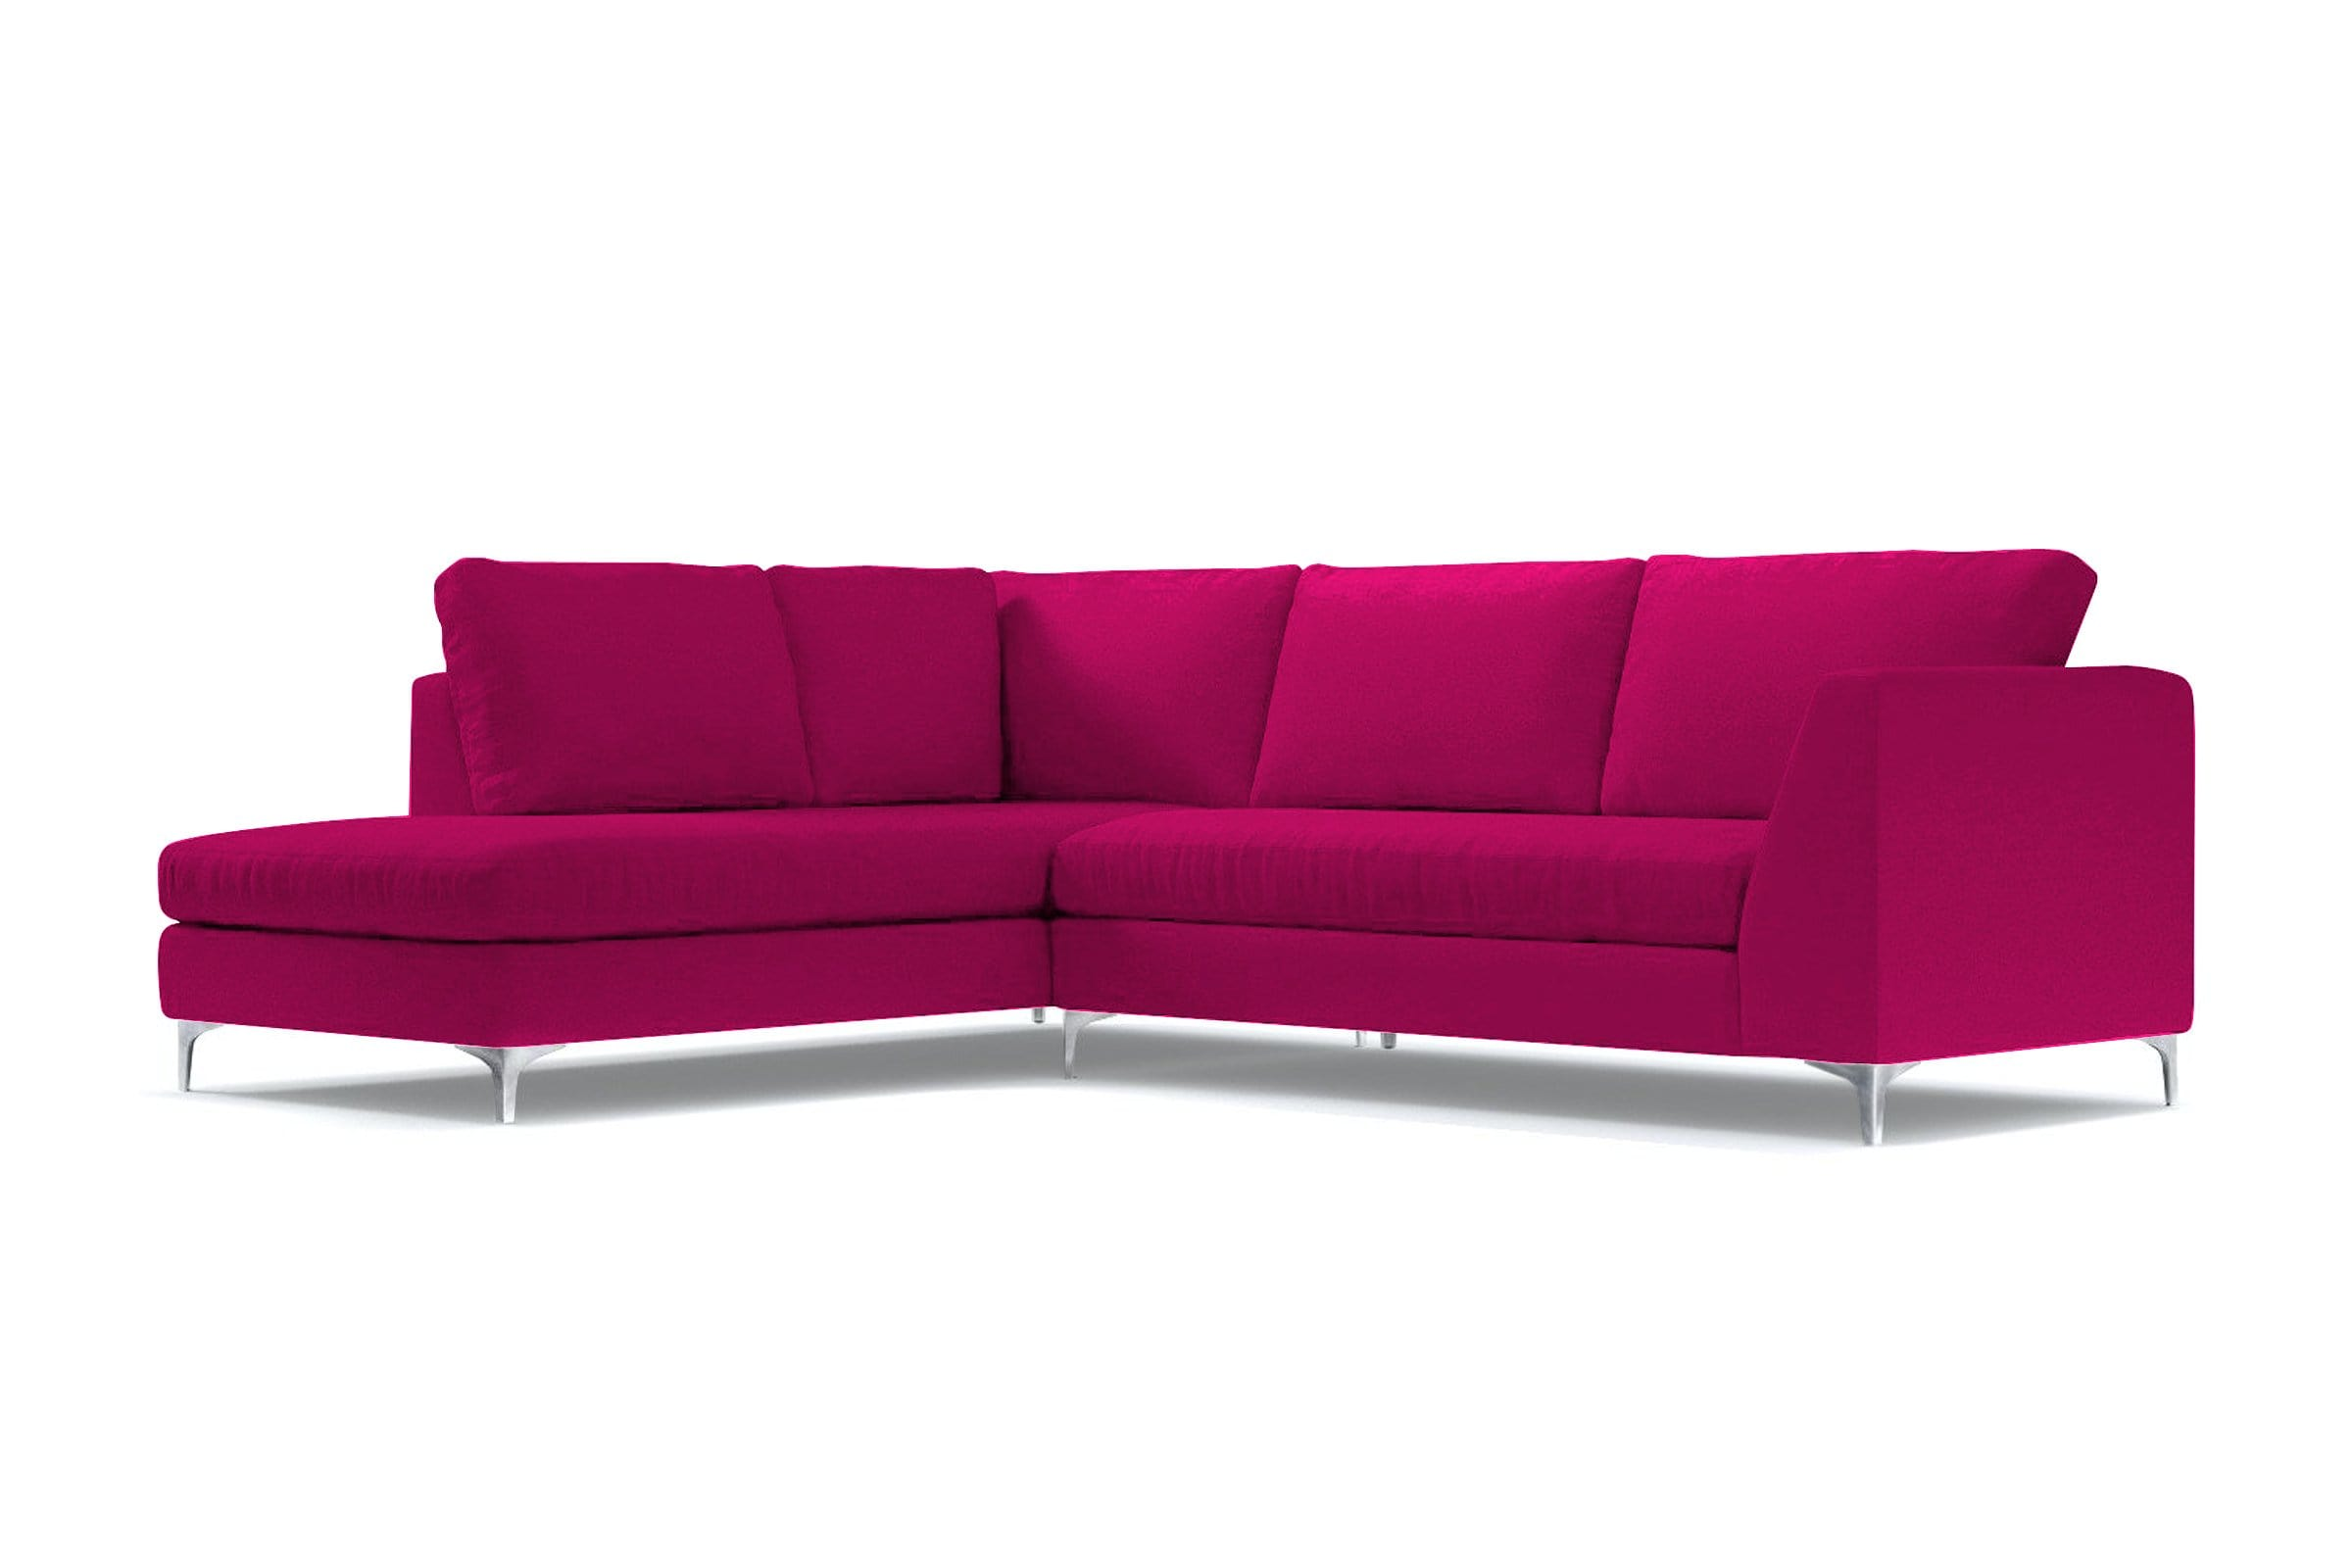 Mulholland 2pc Sectional Sofa - Pink Velvet - Modern Sectional Sofa Made in USA - Sold by Apt2B